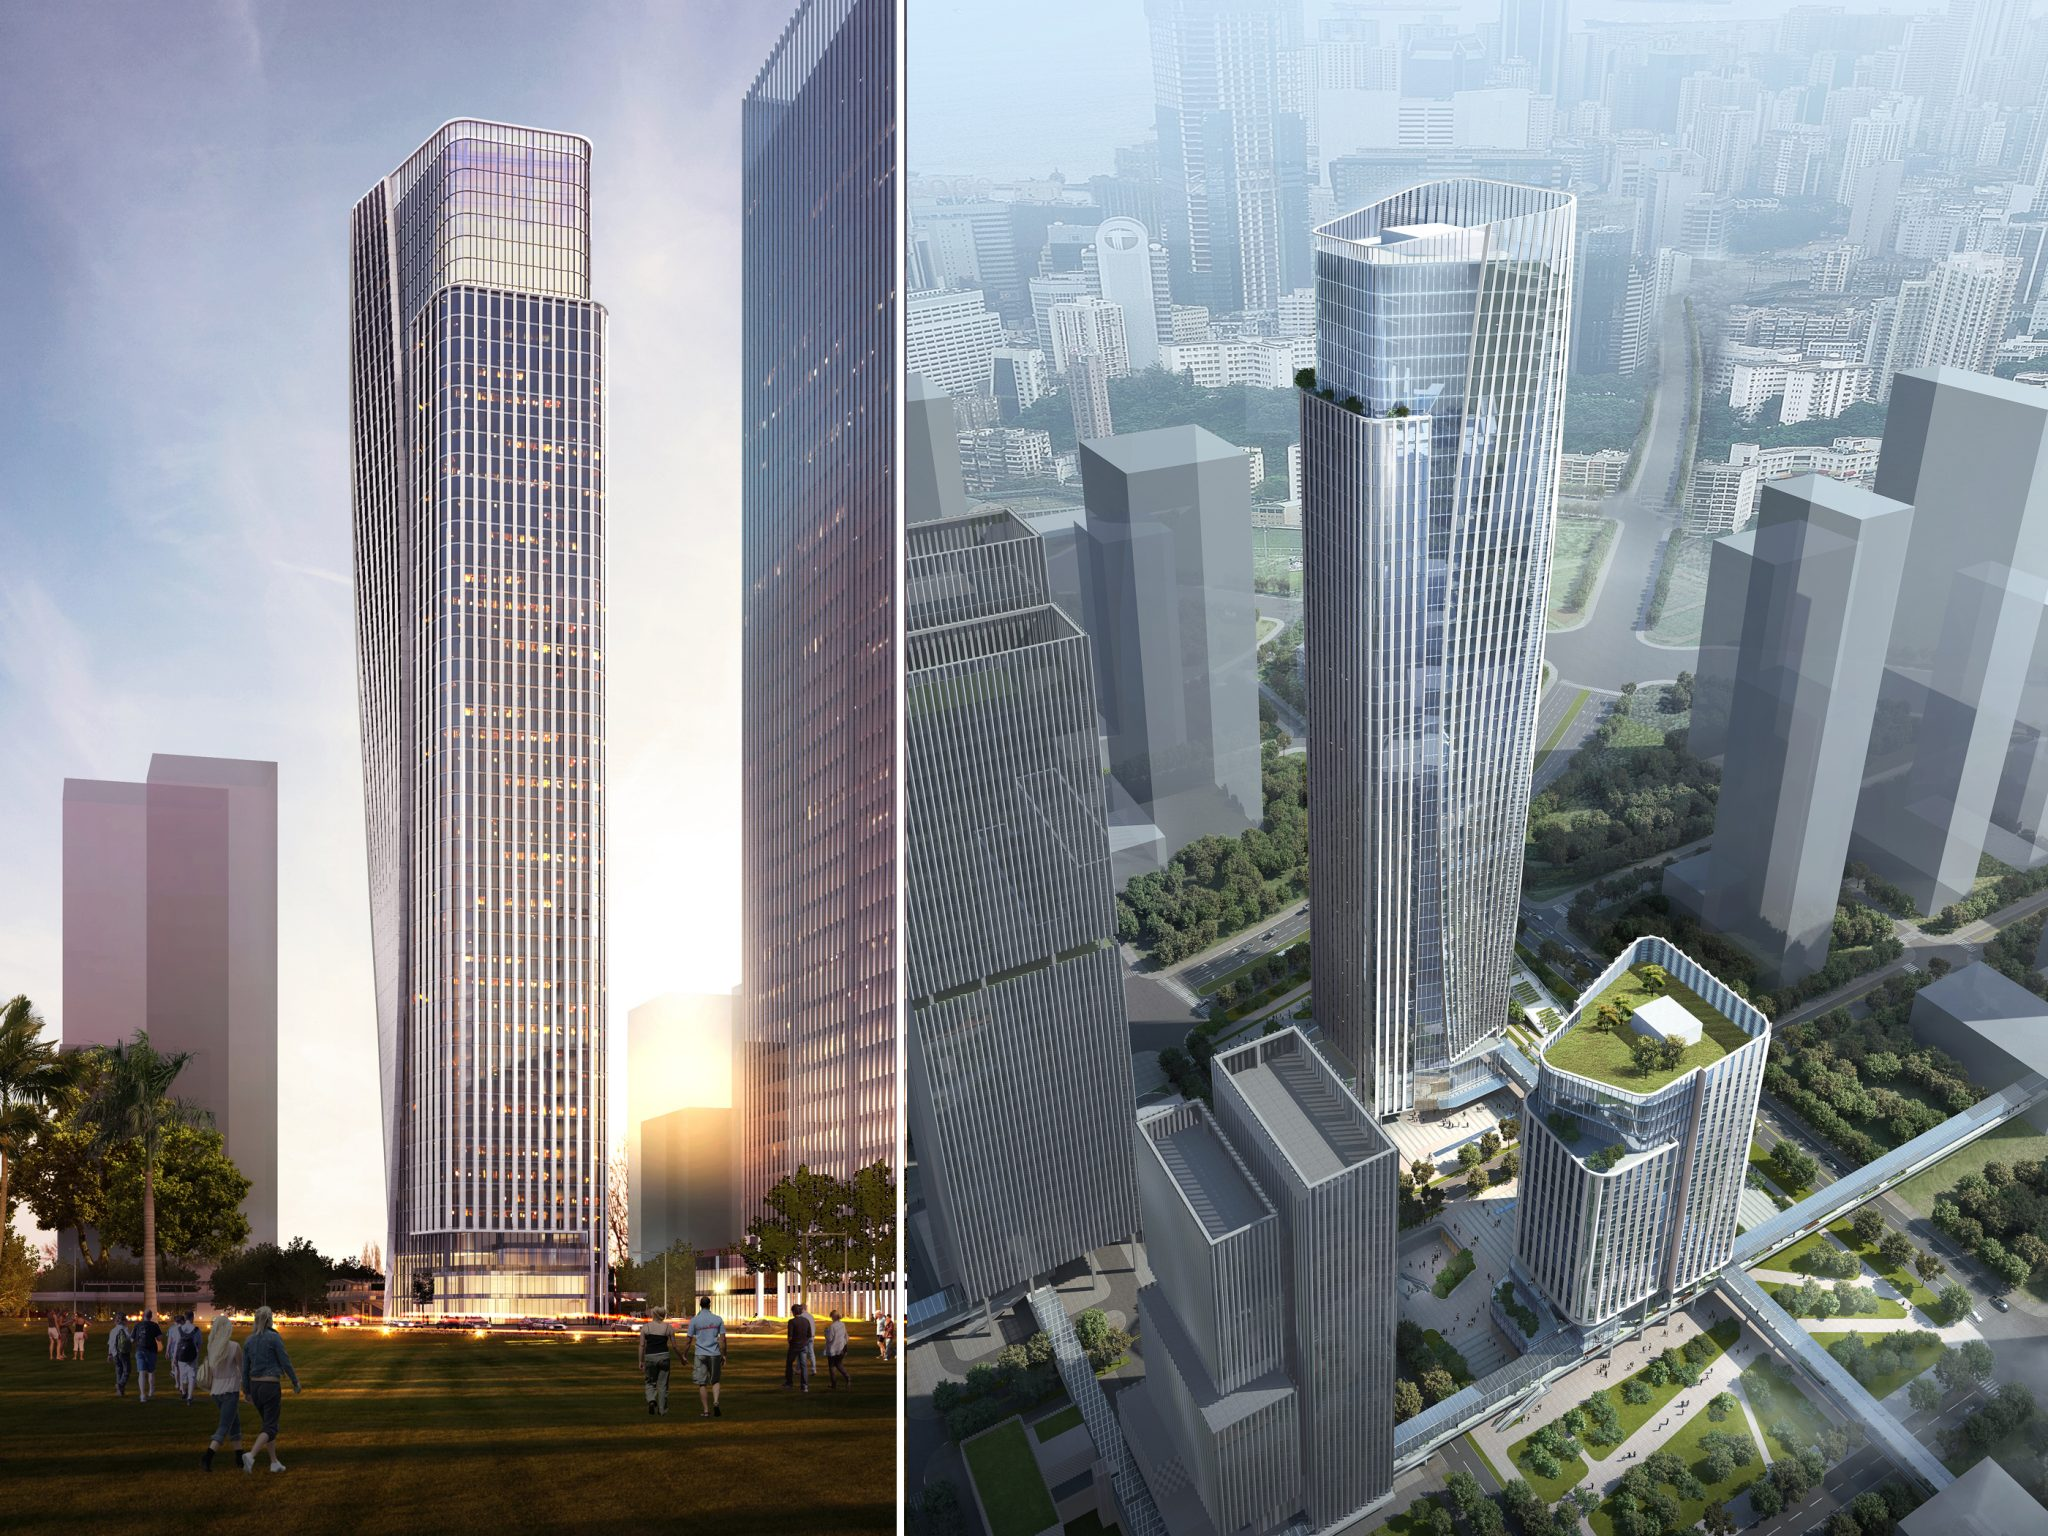 ARCHILIER TEAM WINS INTERNATIONAL COMPETITION TO DESIGN TWO OFFICE TOWERS IN SHENZHEN'S NEWLY-DEVELOPING QIANHAI DISTRICT